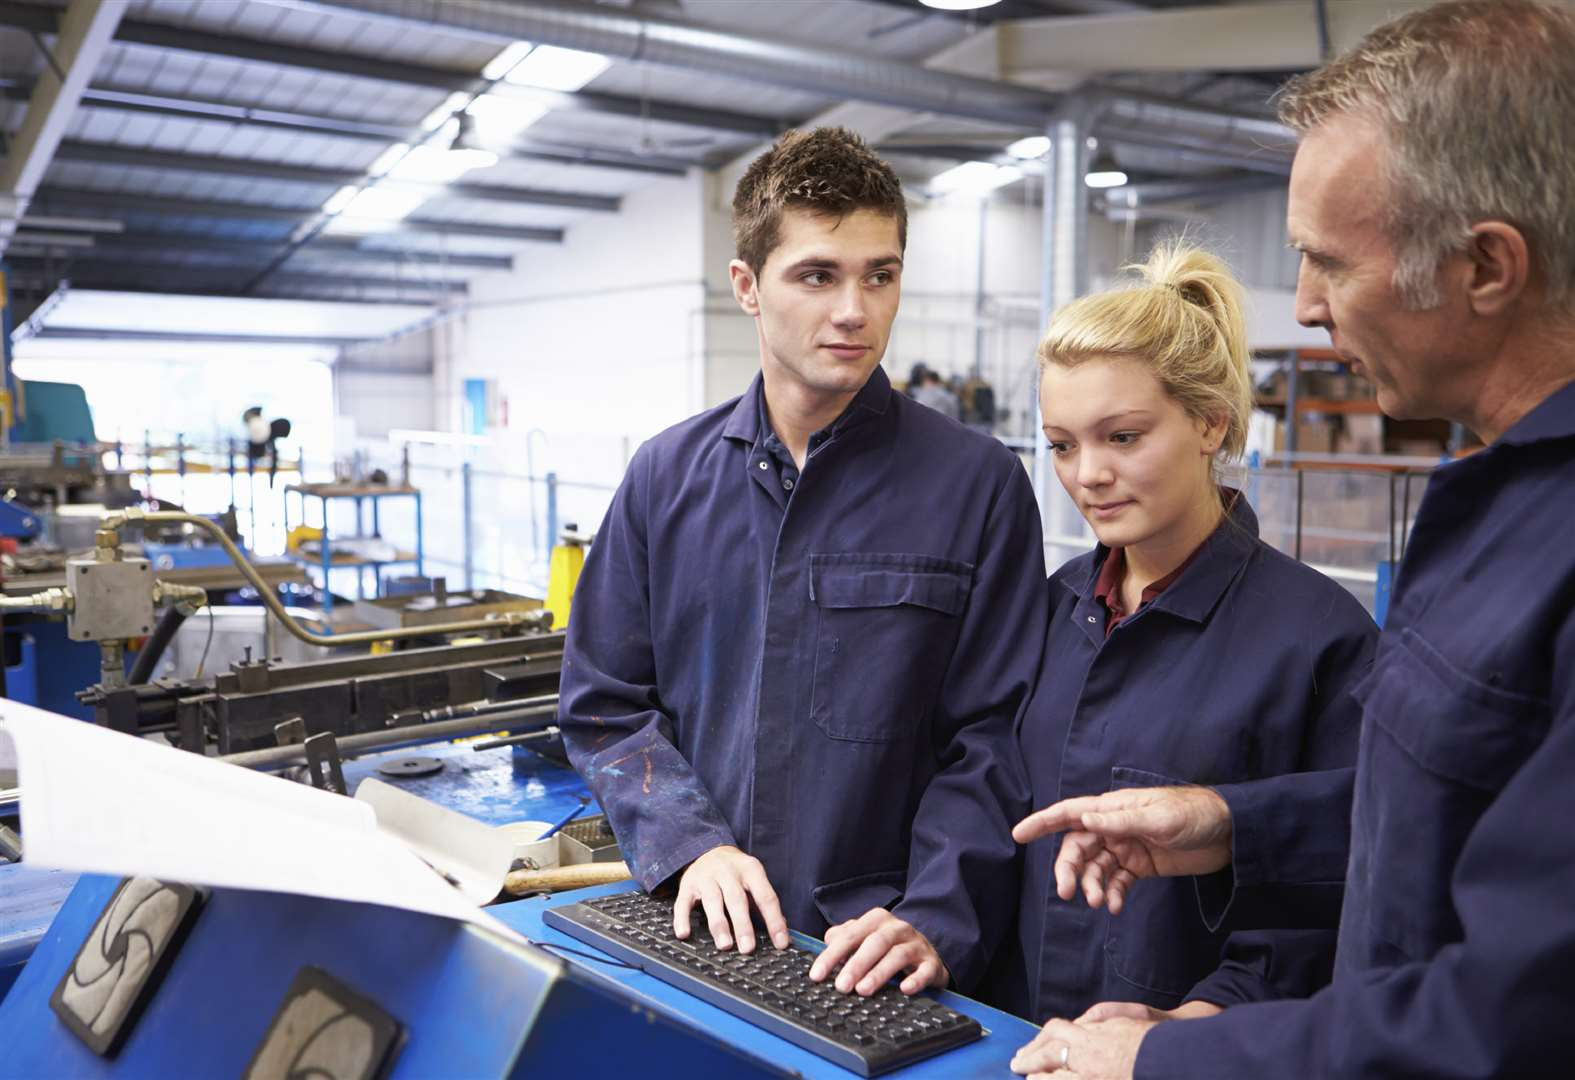 Fewer young apprentices